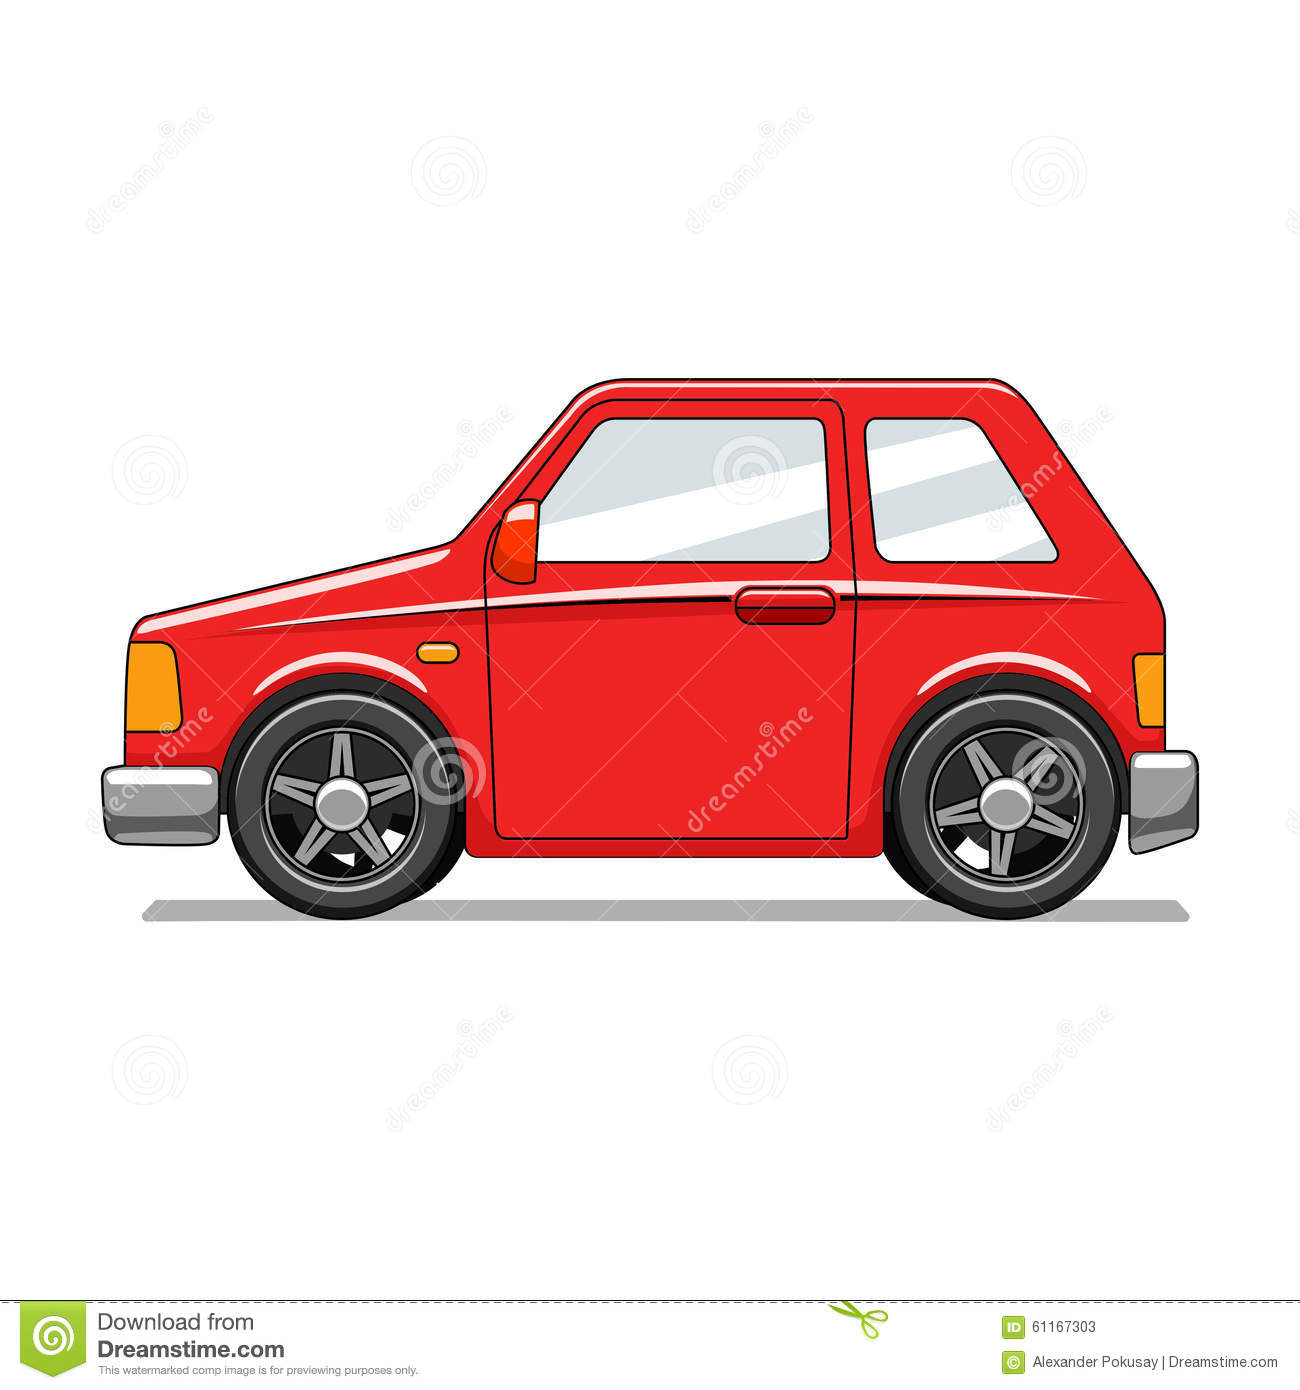 red toy car vector illustration stock vector illustration of draw